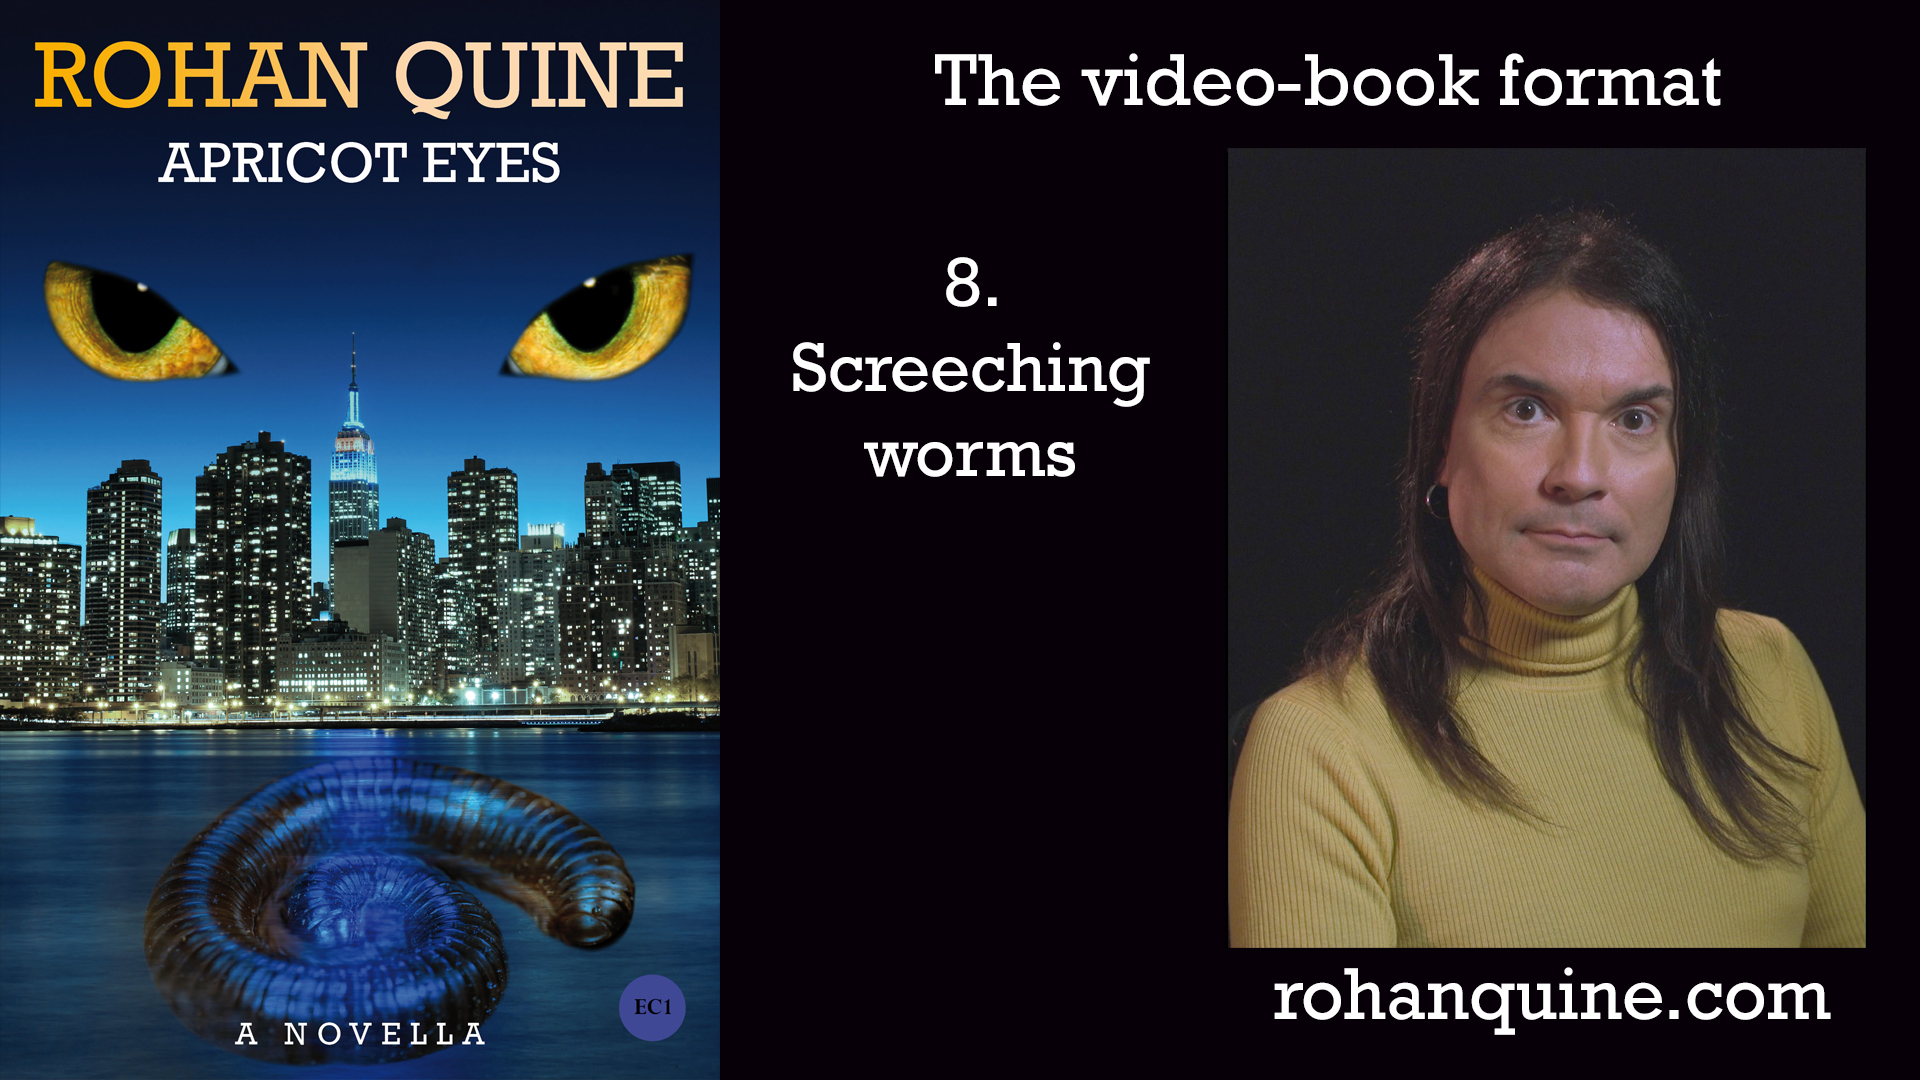 APRICOT EYES by Rohan Quine - video-book format - chapter 8